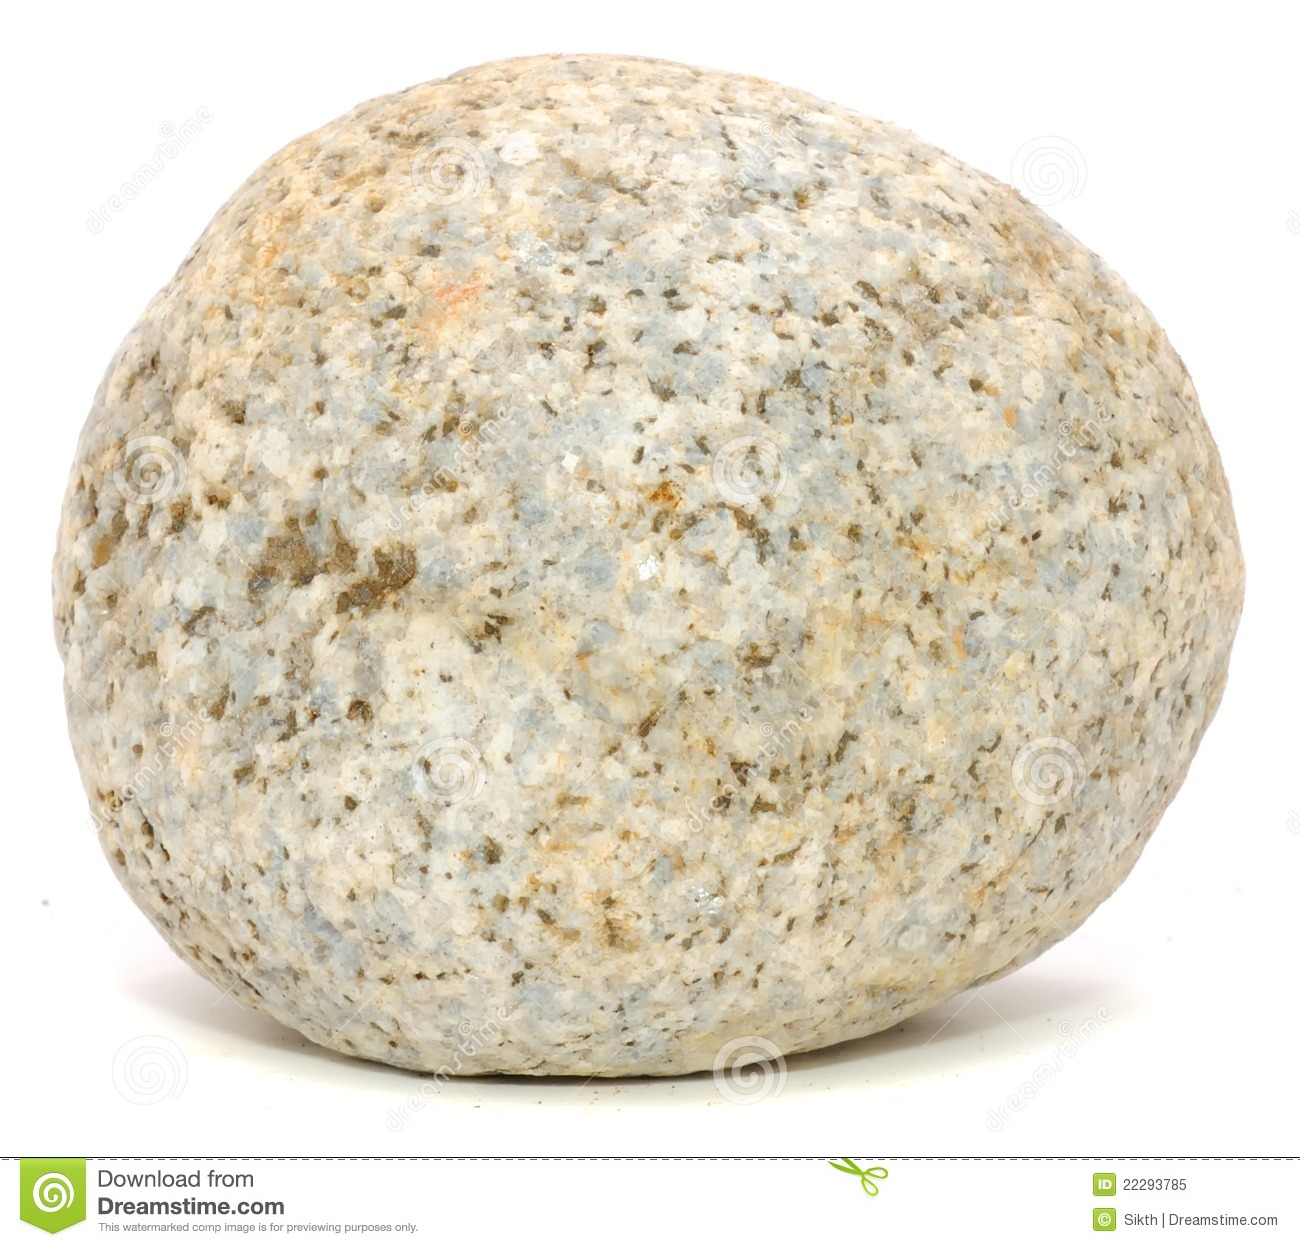 White Round Spotted Granite Stone Stock Image Image  : white round spotted granite stone 22293785 from www.dreamstime.com size 1300 x 1247 jpeg 336kB